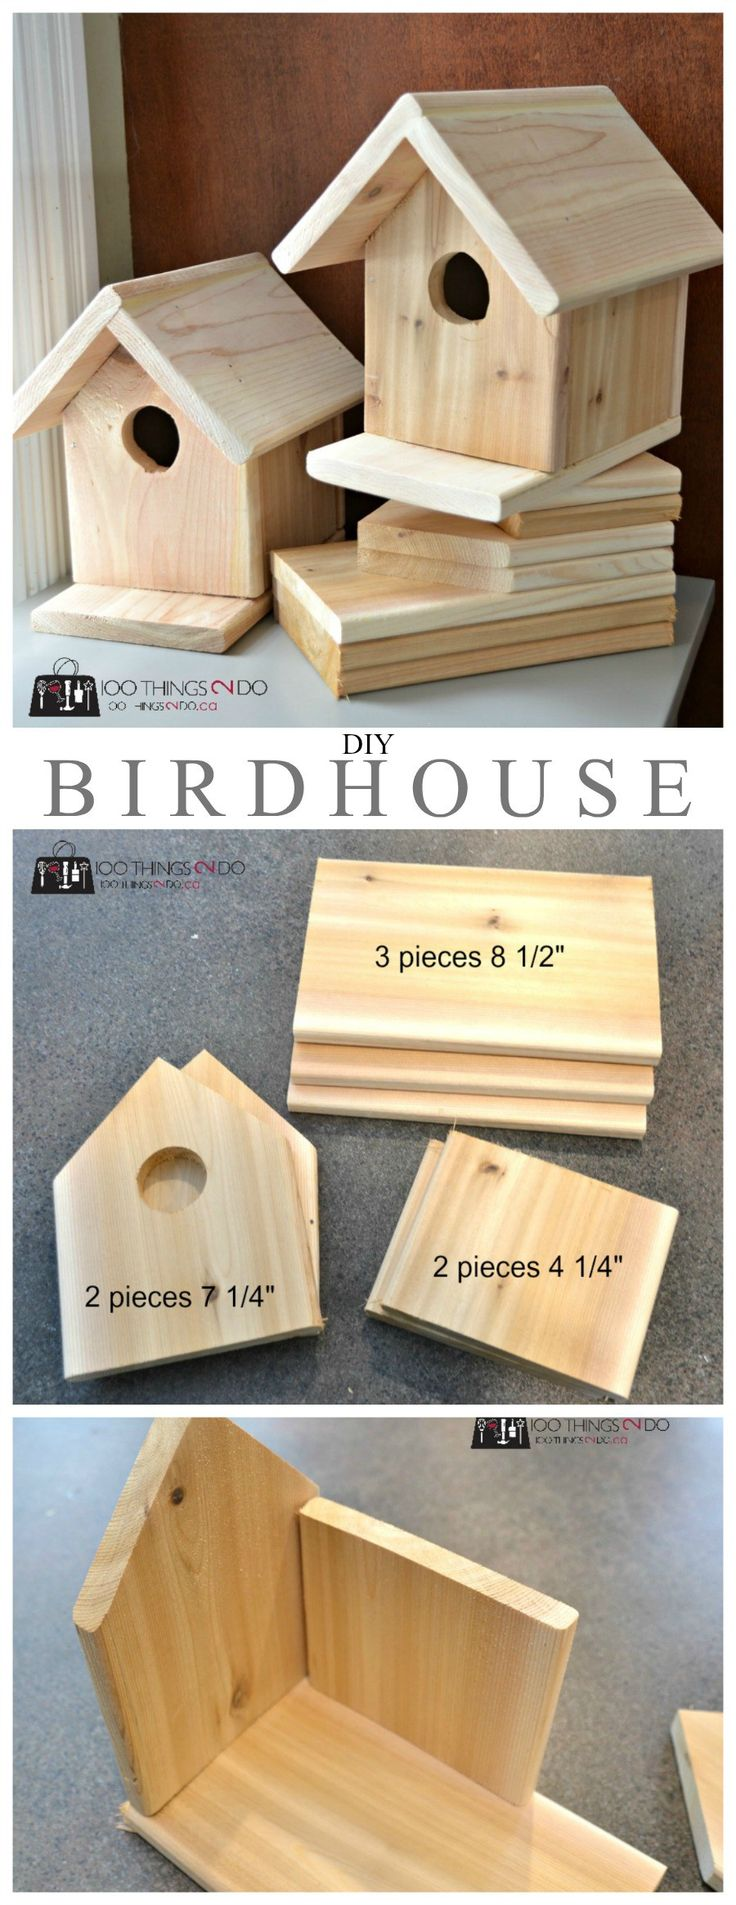 Birdhouse Plans - use cedar wood